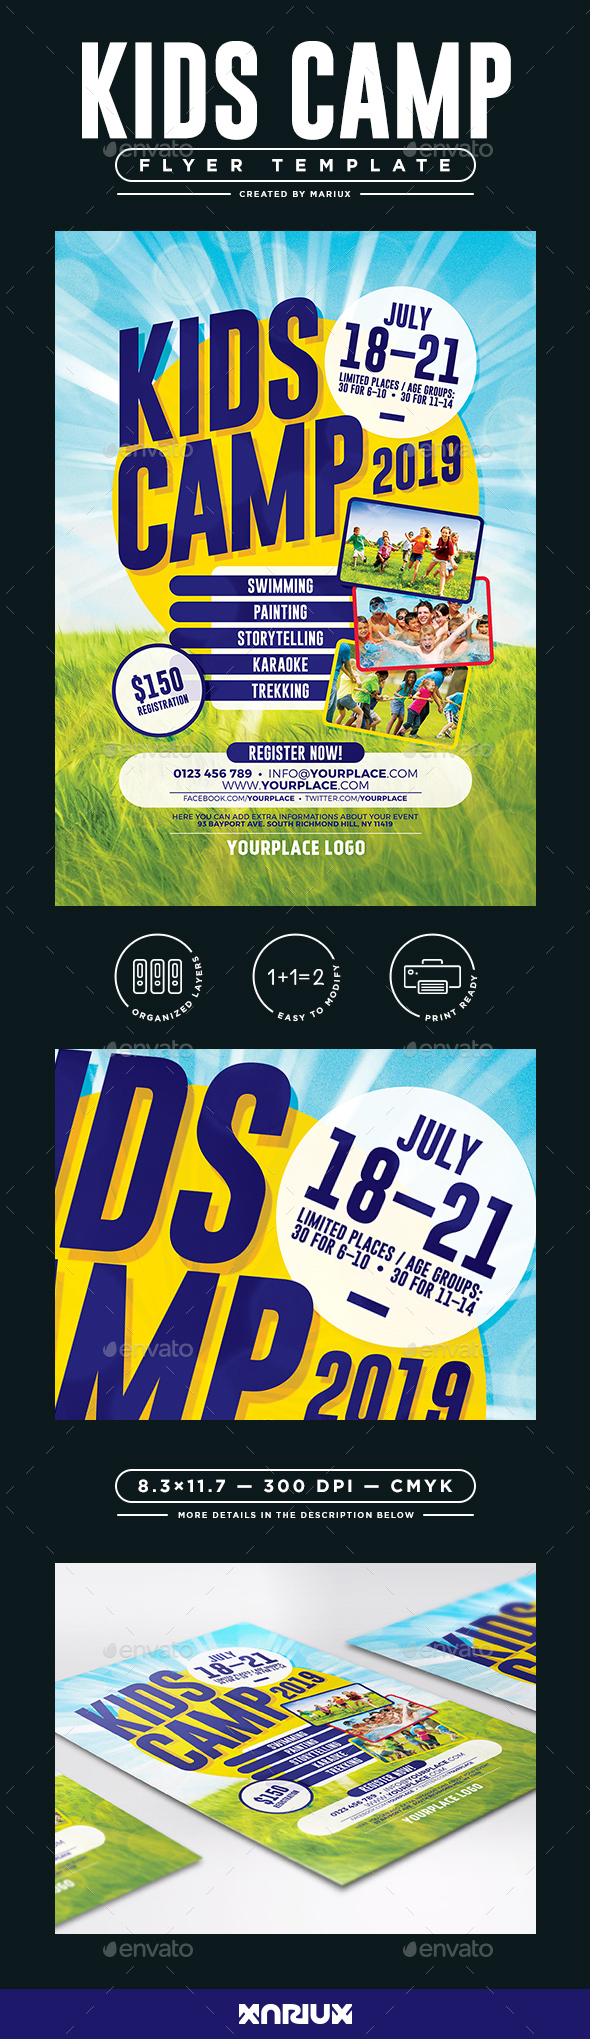 Kids Camp Flyer/Poster - Corporate Flyers